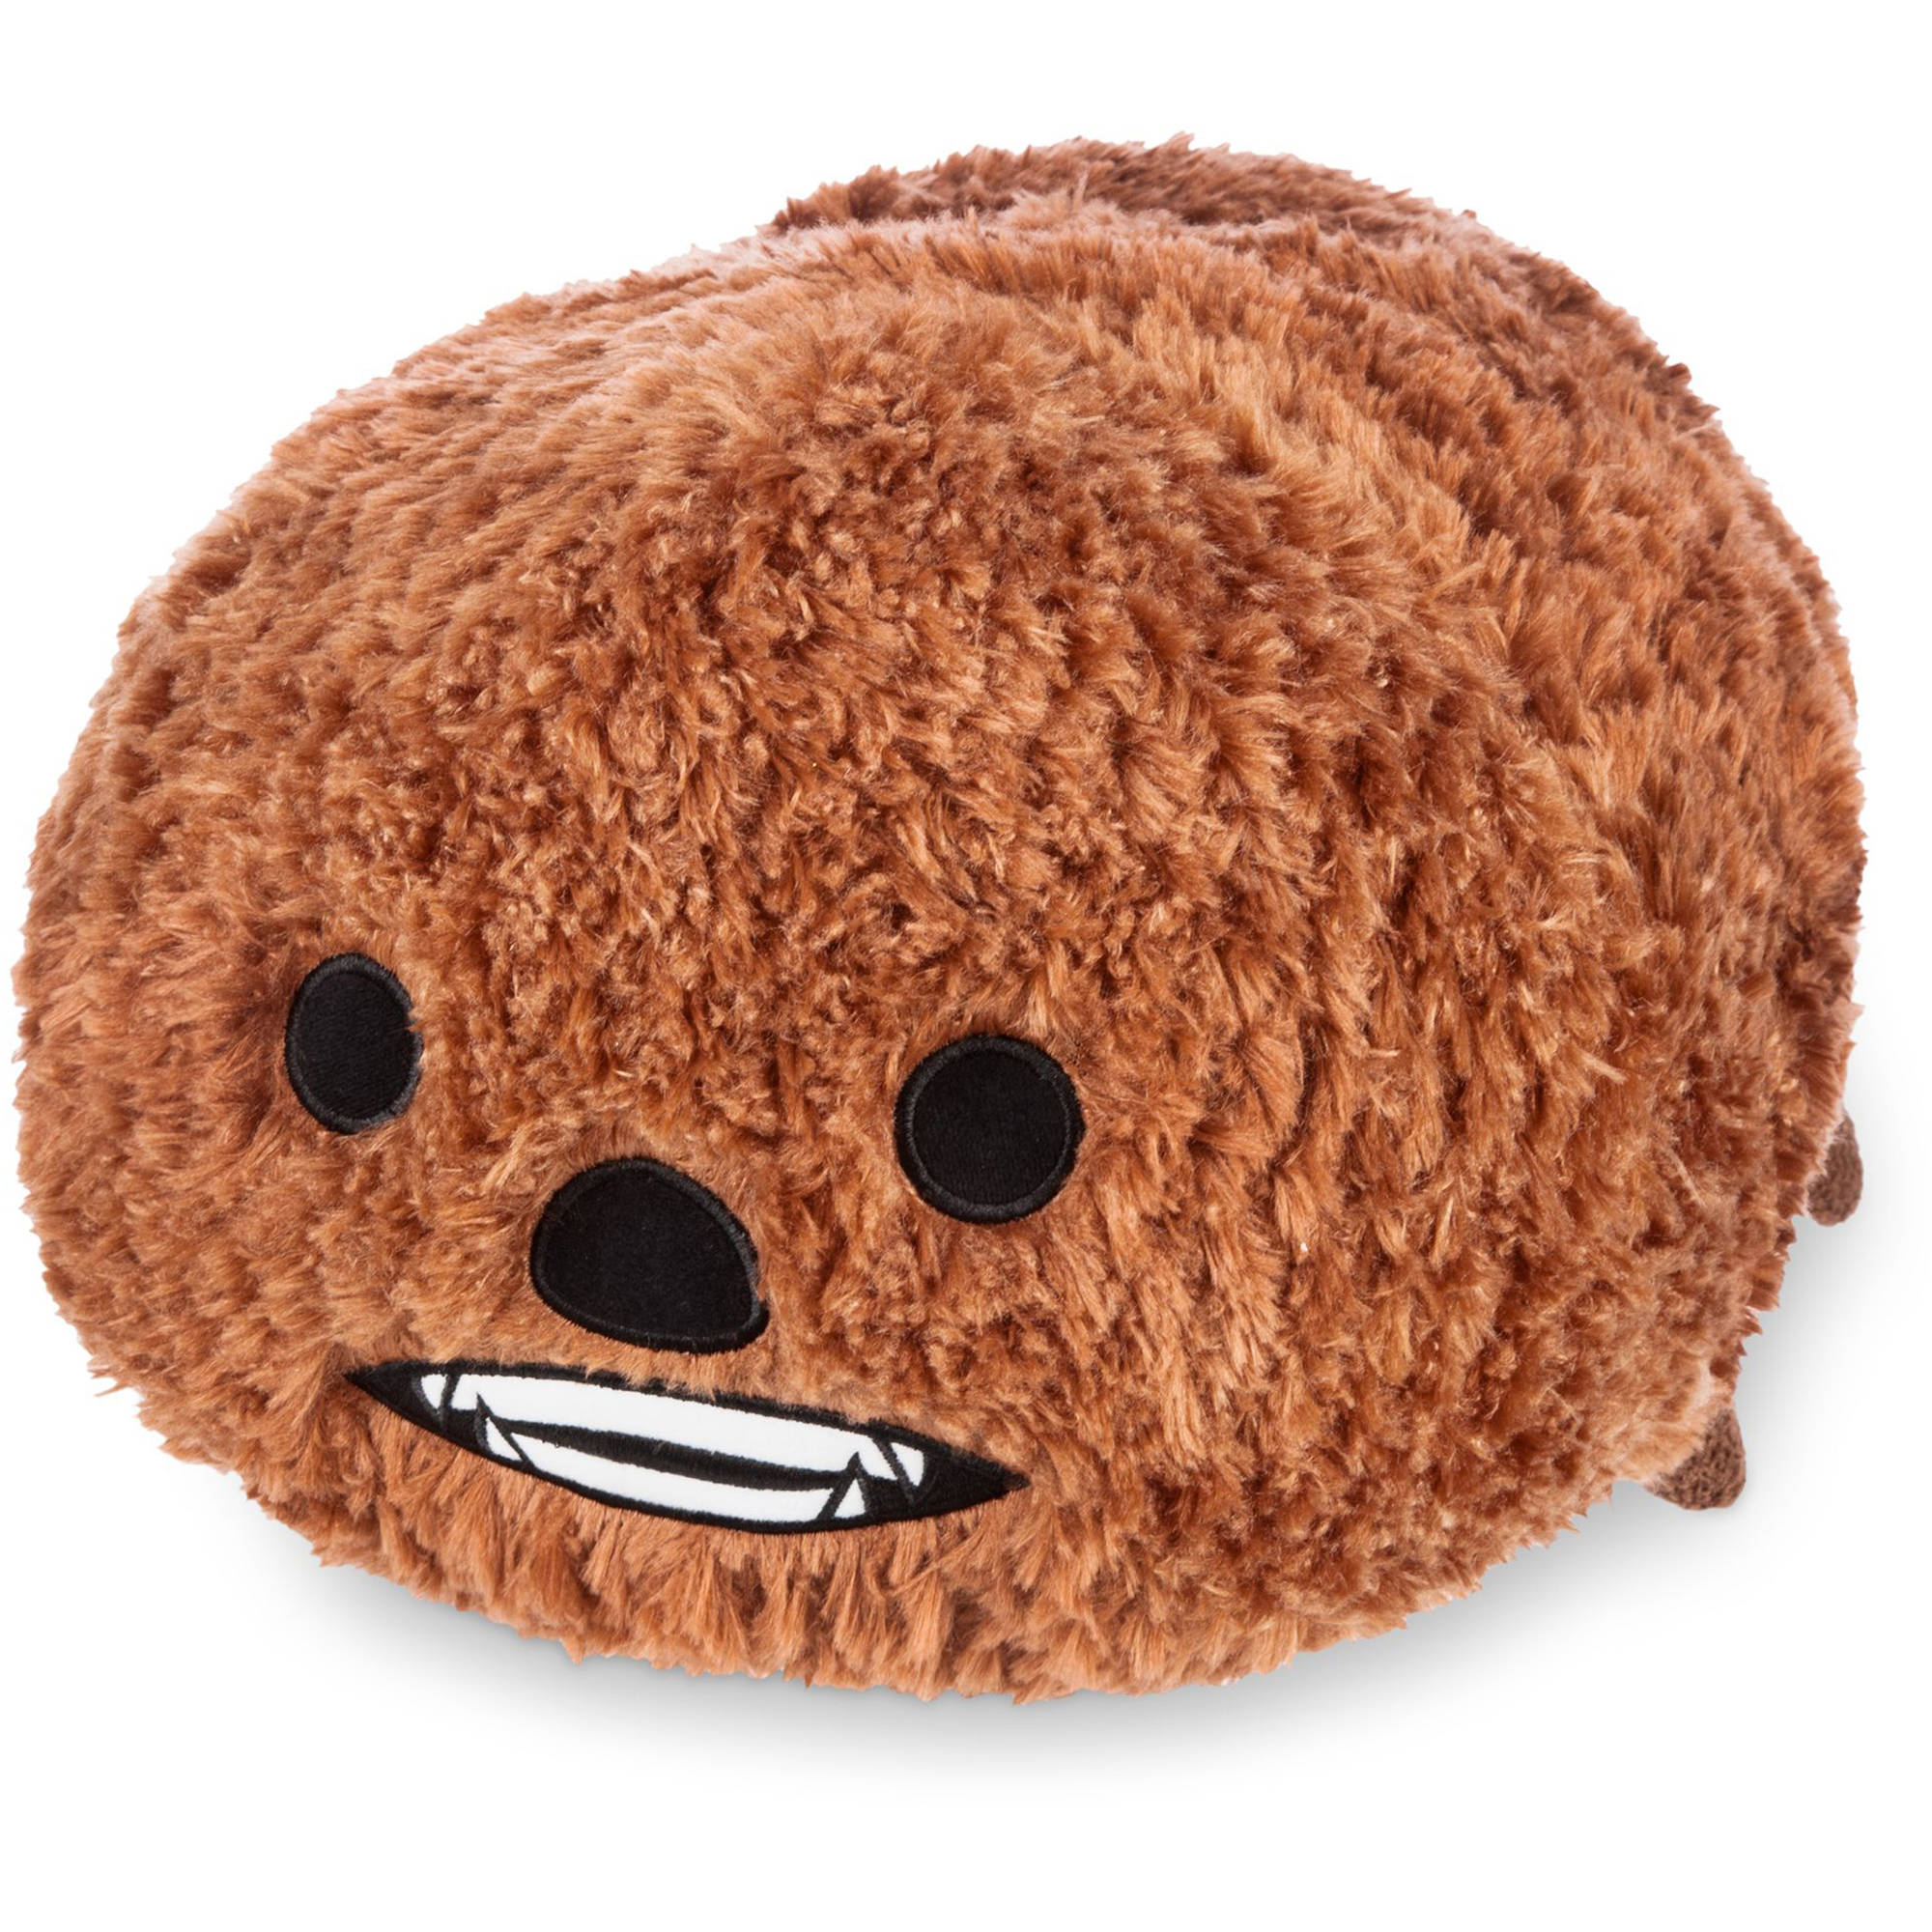 Disney Large Tsum Tsum Chewbacca